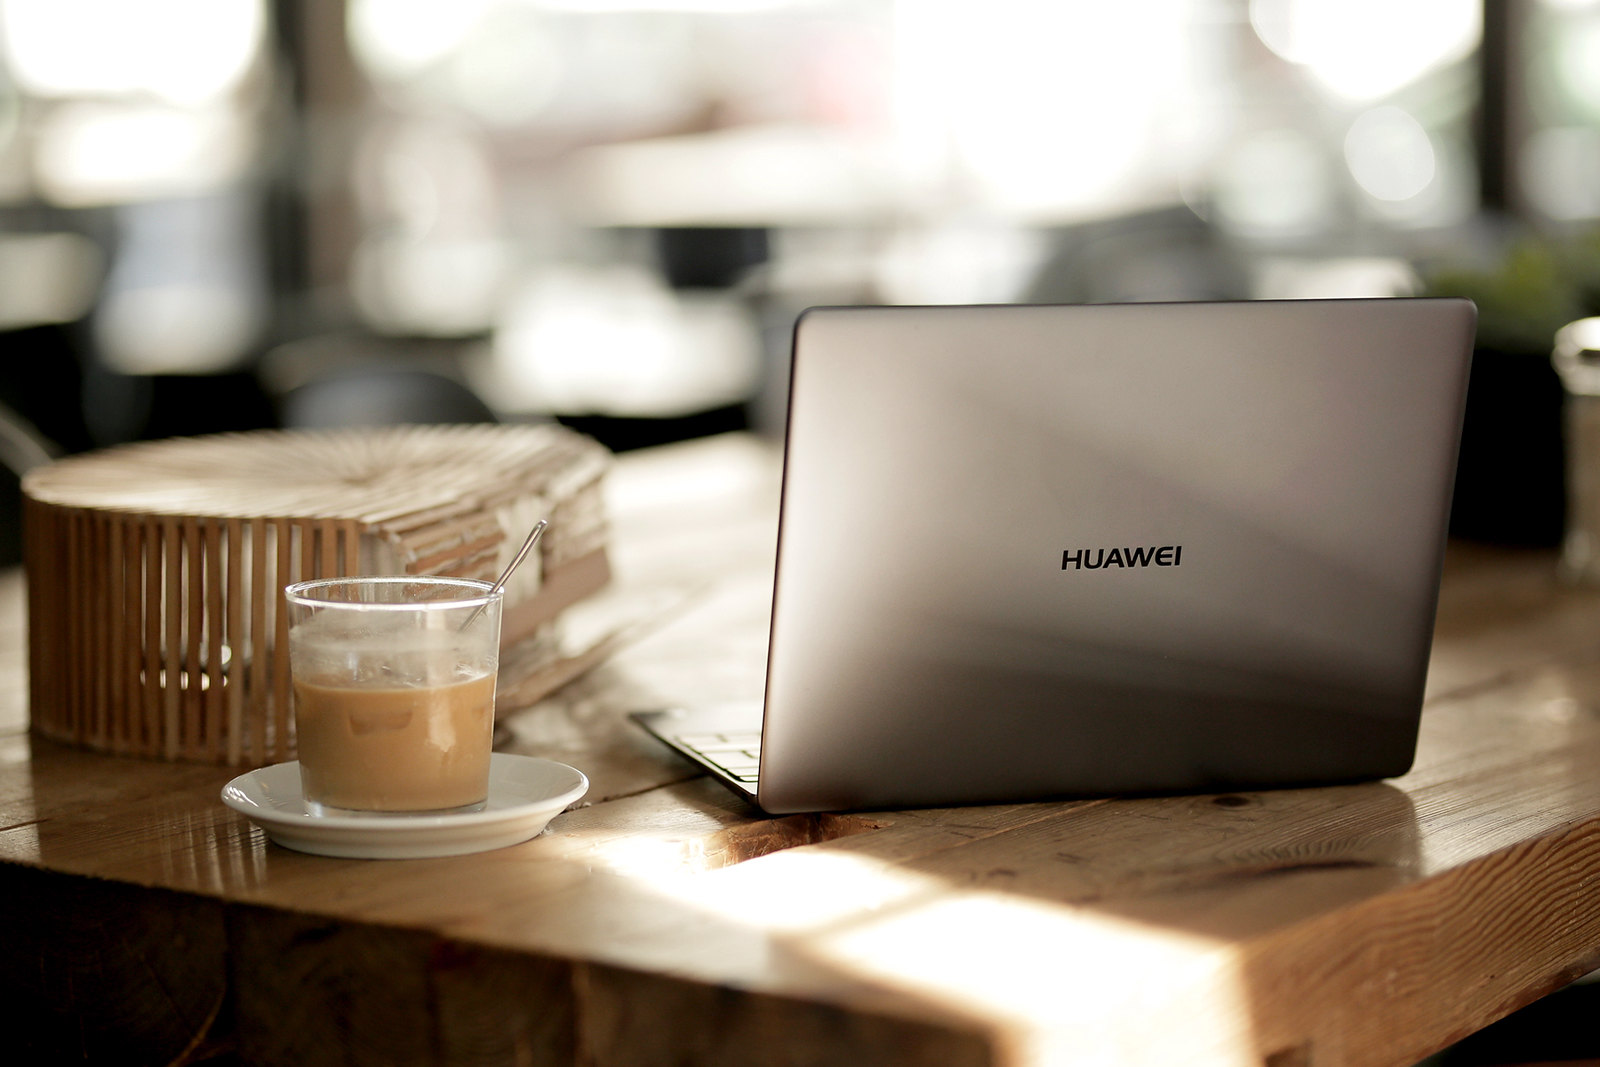 HUAWEI MateBook X laptop notebook mobile workstation digital nomad influencer blogger working business cats & dogs modeblog fashionblogger ricarda schernus düsseldorf max bechmann fotografie film berlin bloggers modeblog 9